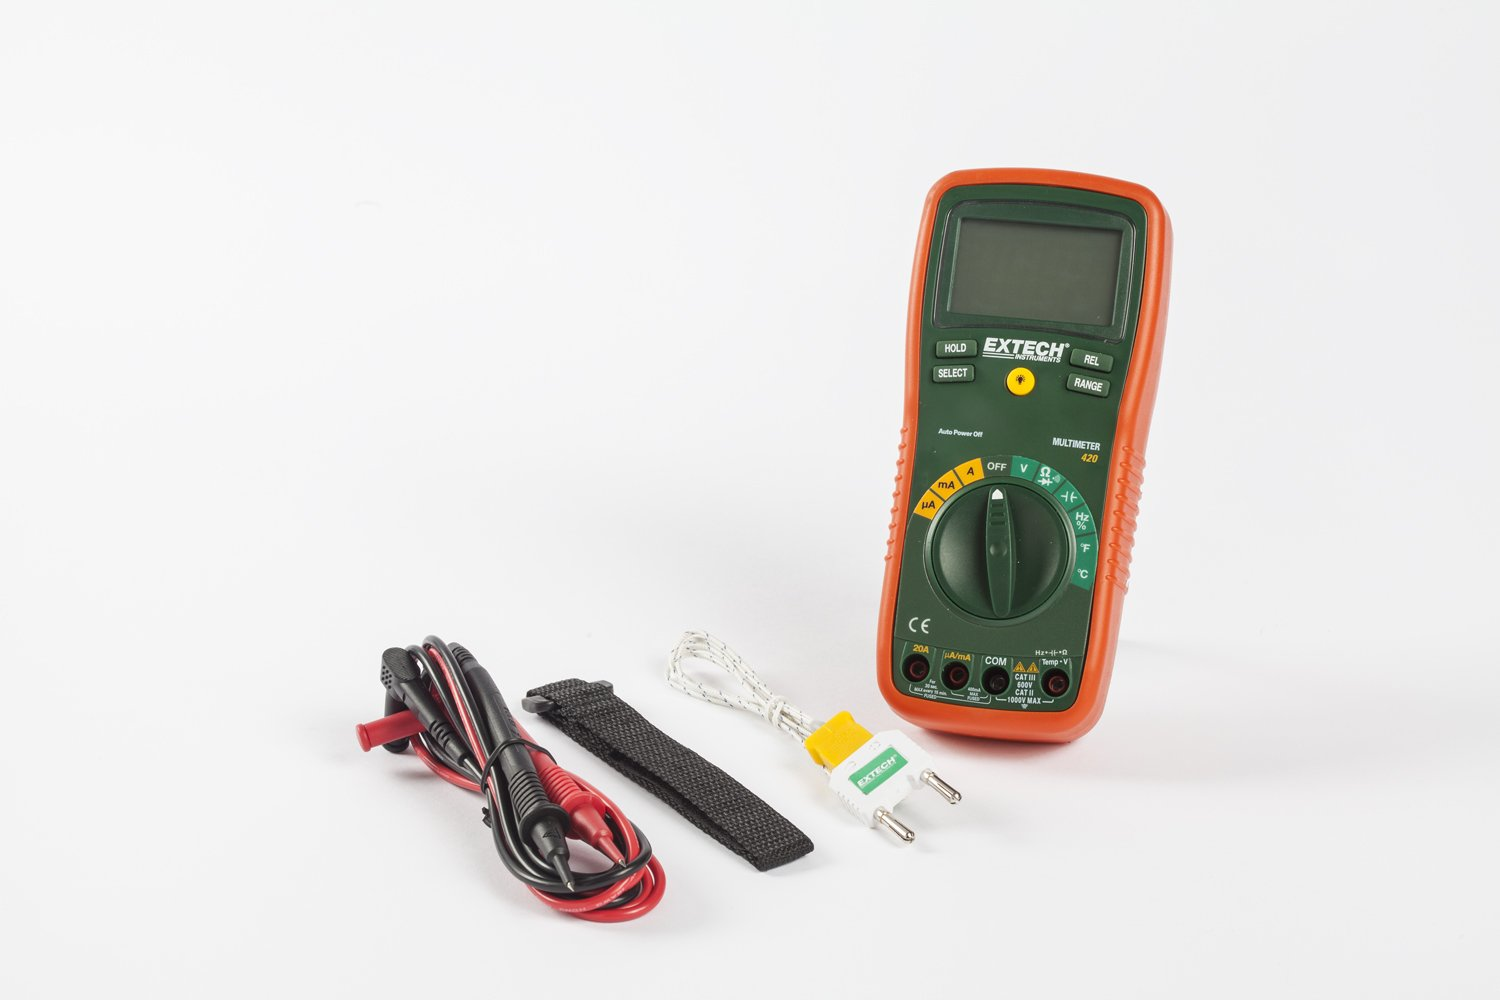 Extech EX420 Professional 11 Function MultiMeter by Extech (Image #3)